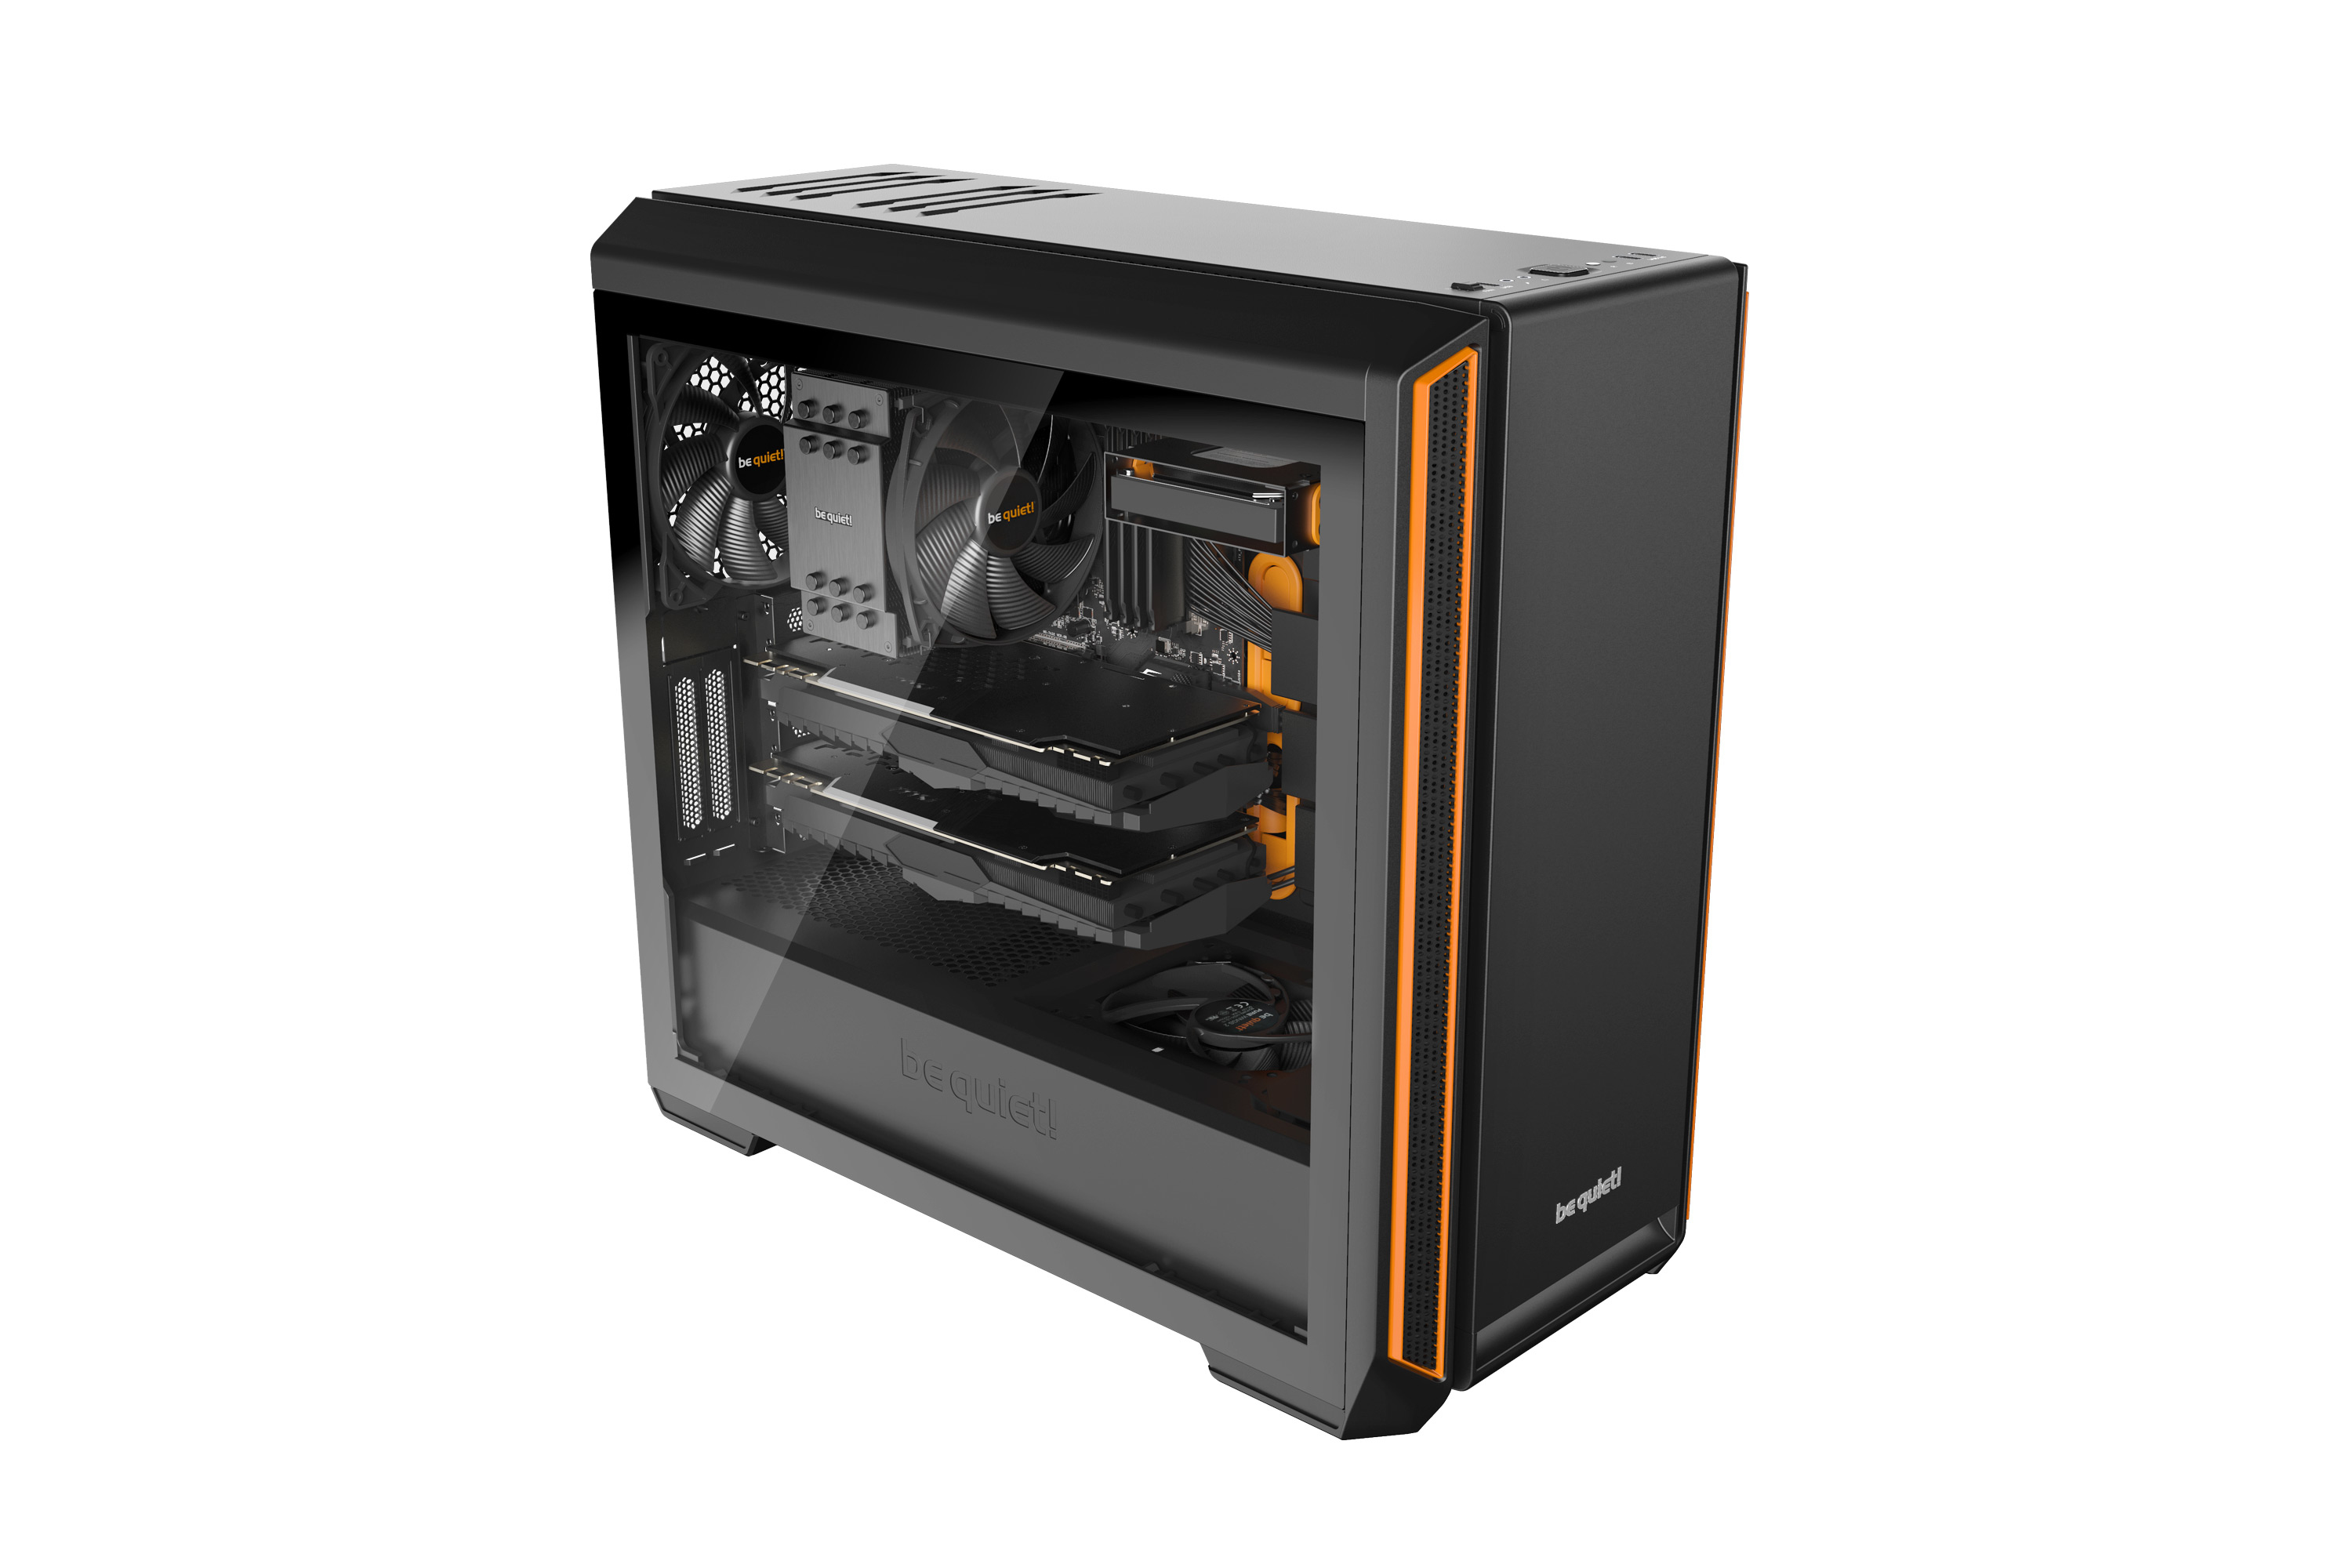 be quiet! Silent Base 601 Window Orange, 532 x 240 x 514, IO-panel 2x USB 3.0, 1x USB 2.0, HD Audio, 3 (7) x 3,5, 6 (14) x 2,5, inc 2x 140 mm Pure Wings 2, dual air channel cooling, Tinted and Tempered Glass side panel